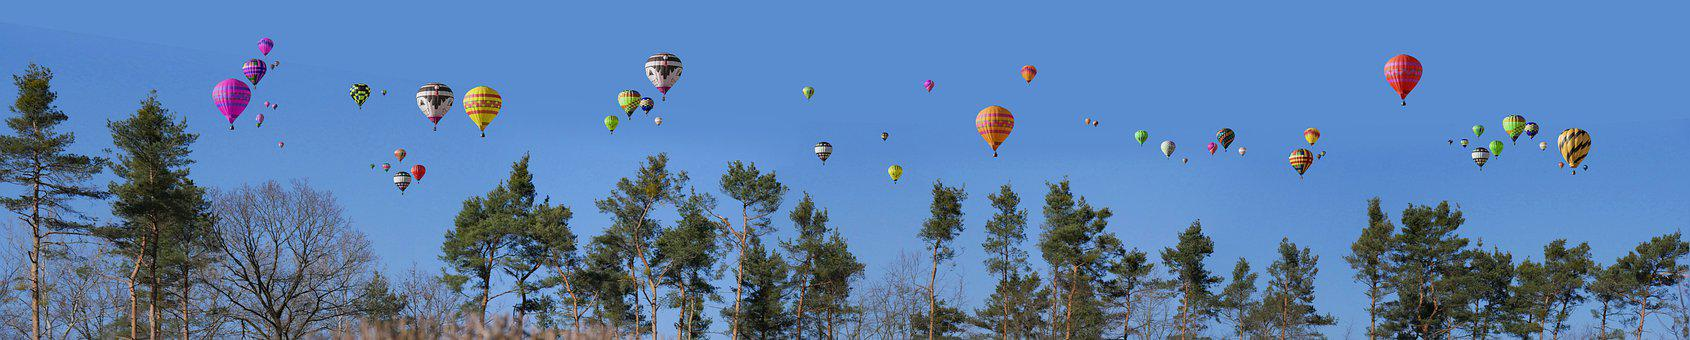 Hot Air Balloons, Travel, Adventure, Nature, Outdoors